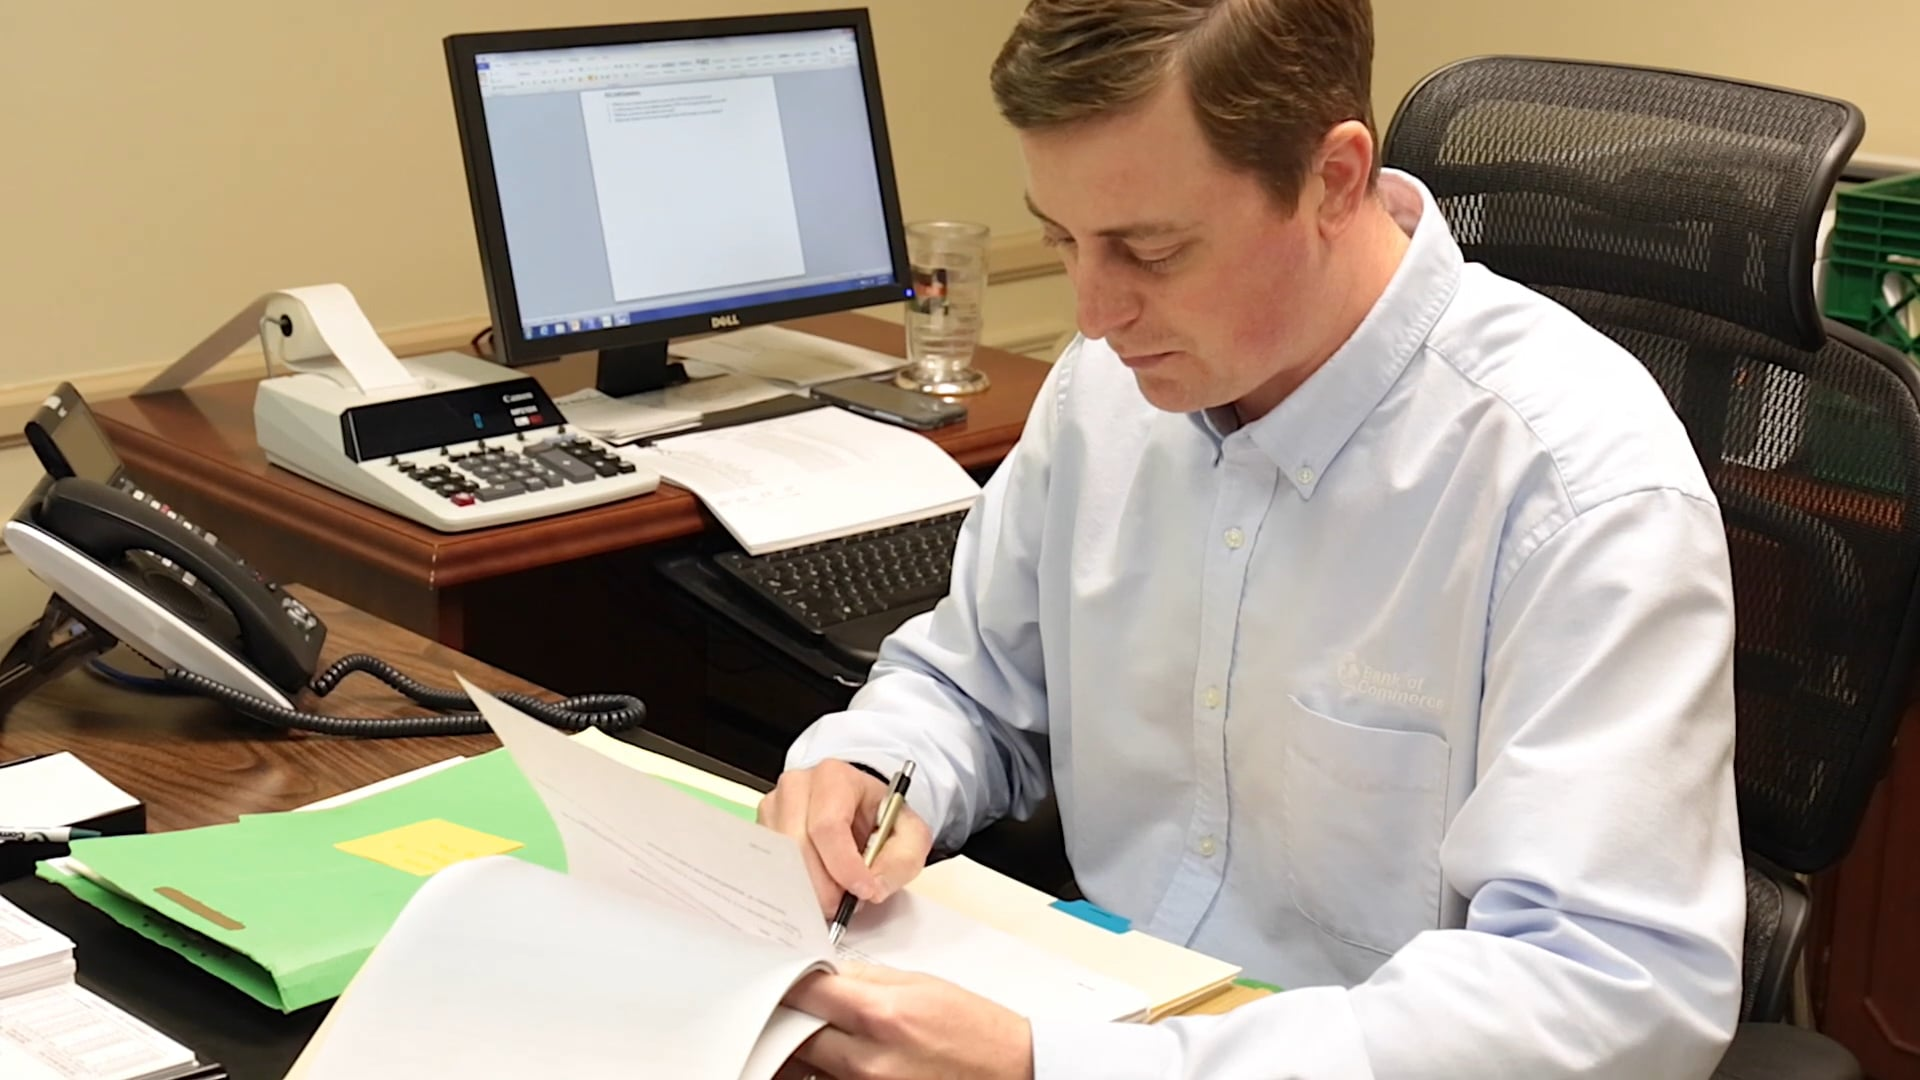 Meet Justin Braswell, team member at Bank of Commerce in Greenwood, MS.